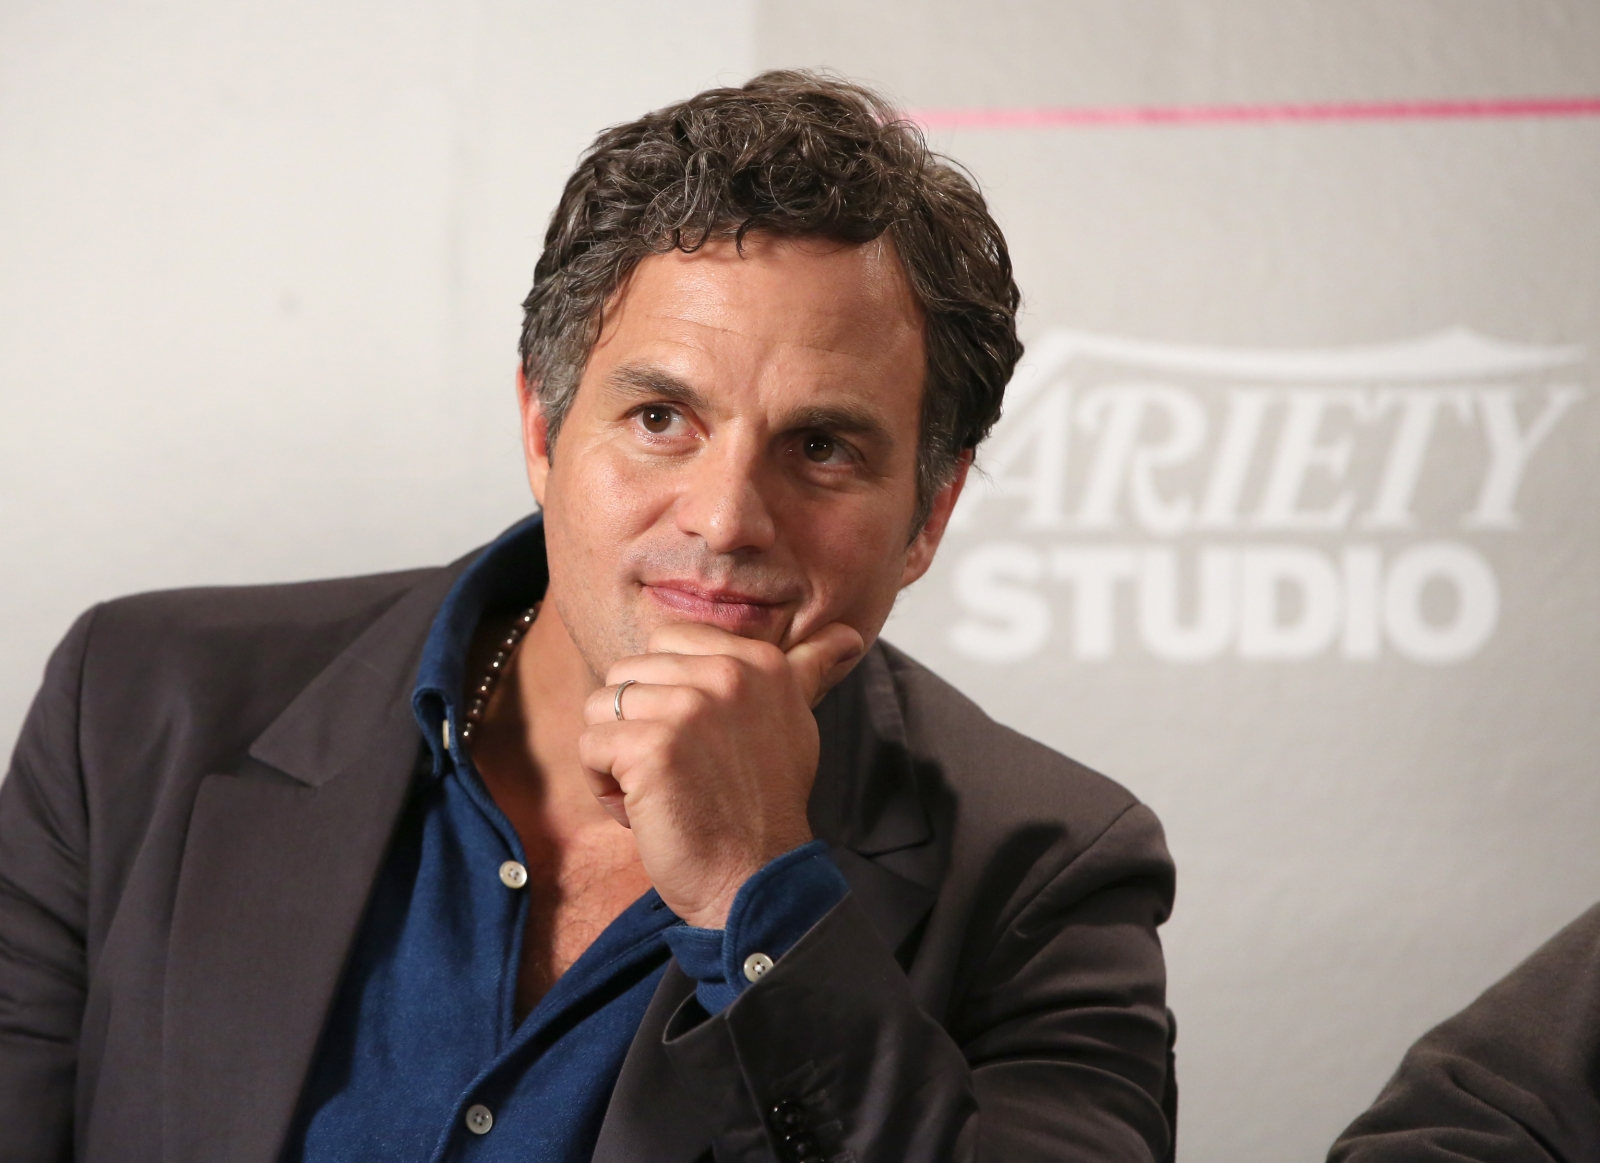 Actor Mark Ruffalo has withdrawn his support for Brazilian presidential candidate Mariana Silva over gay marriage issues